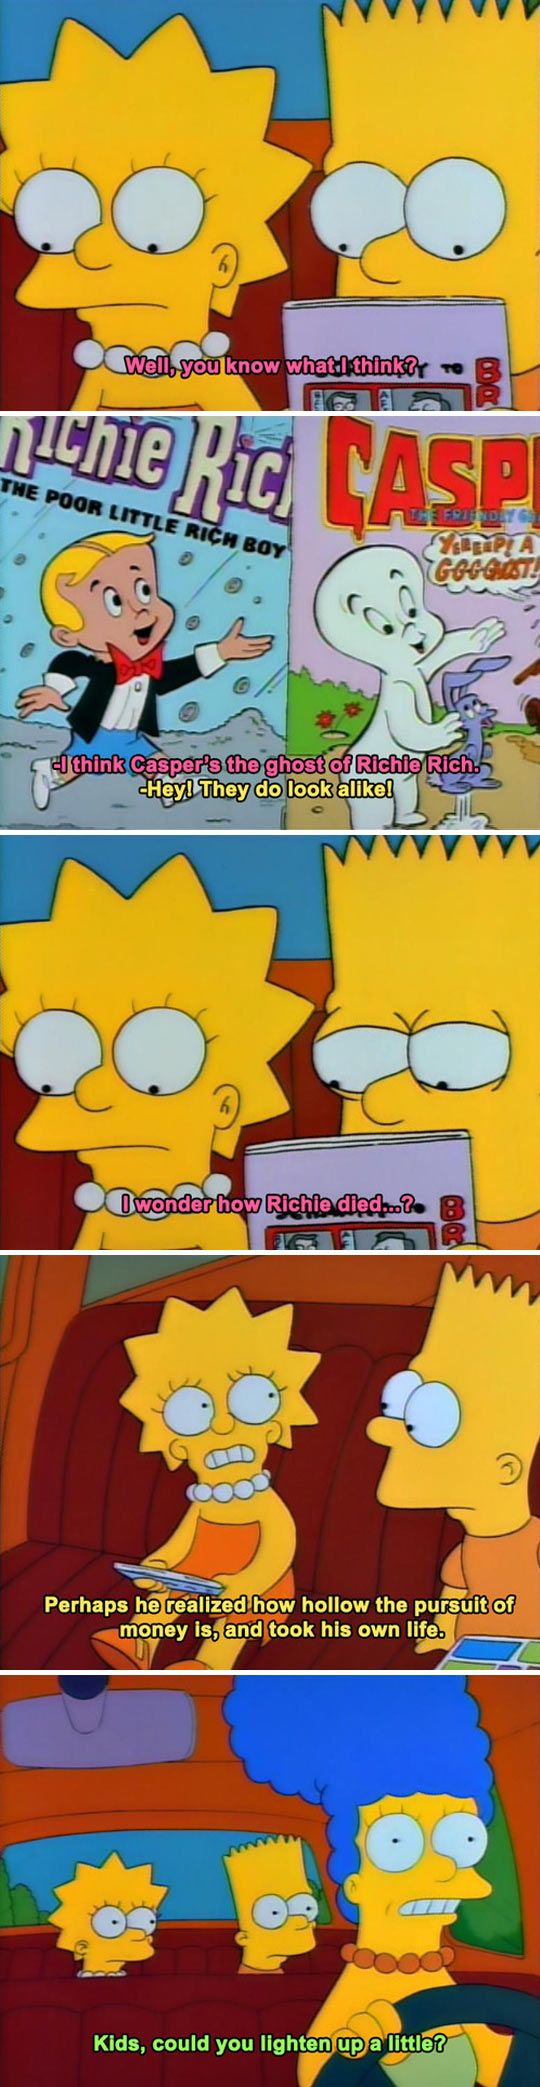 I miss when the Simpsons had stuff like this. now it seems really, I dunno, sanitized.